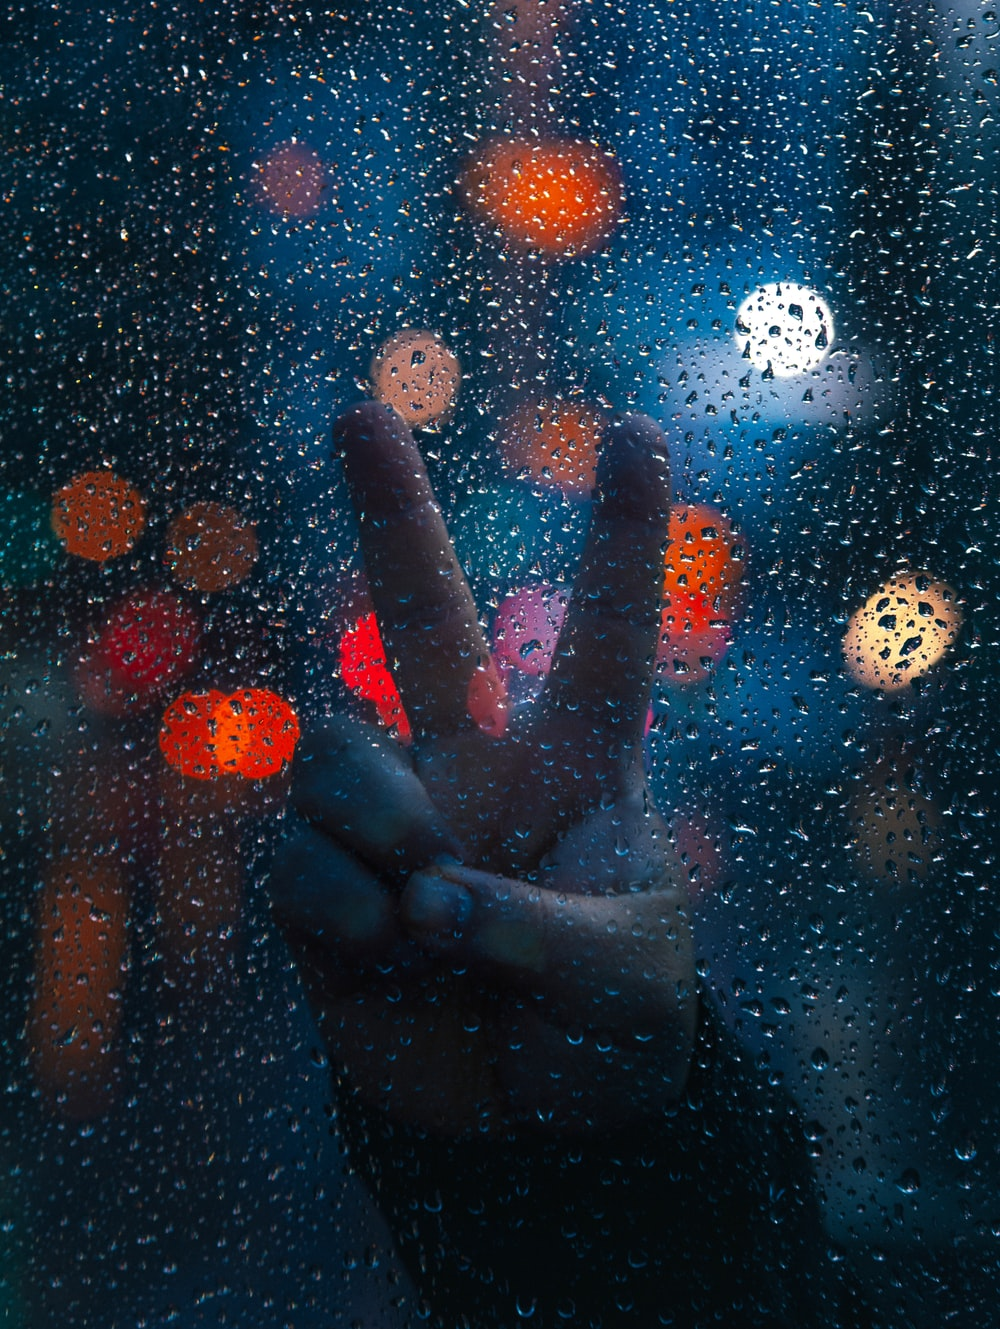 persons hand on glass with water droplets